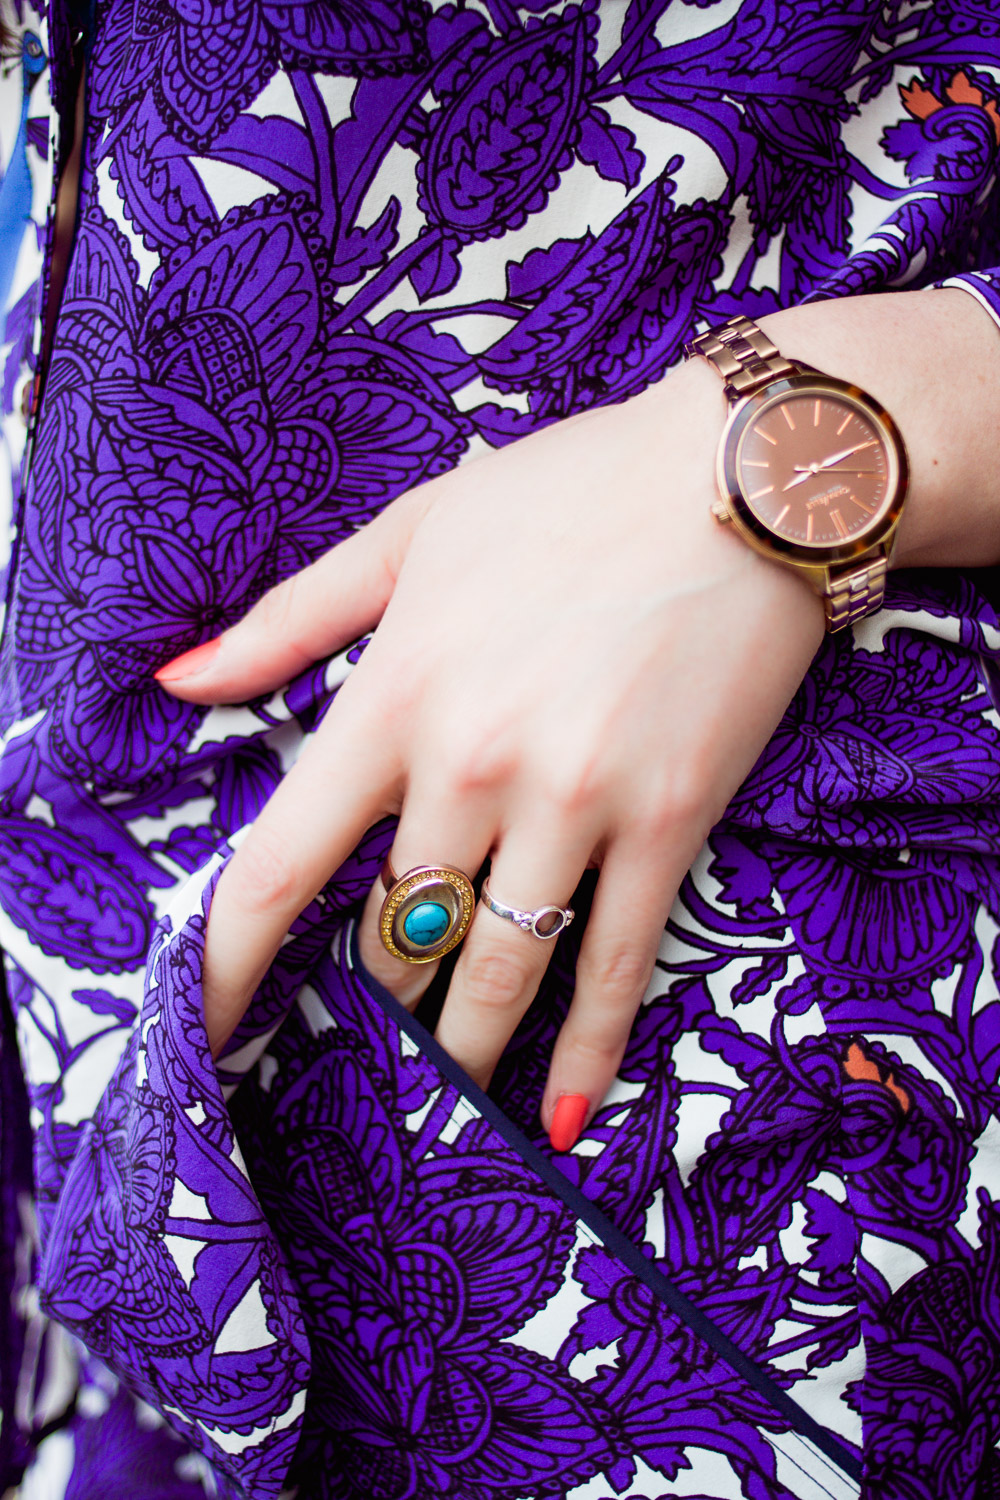 jewellery watch and rings in a pocket